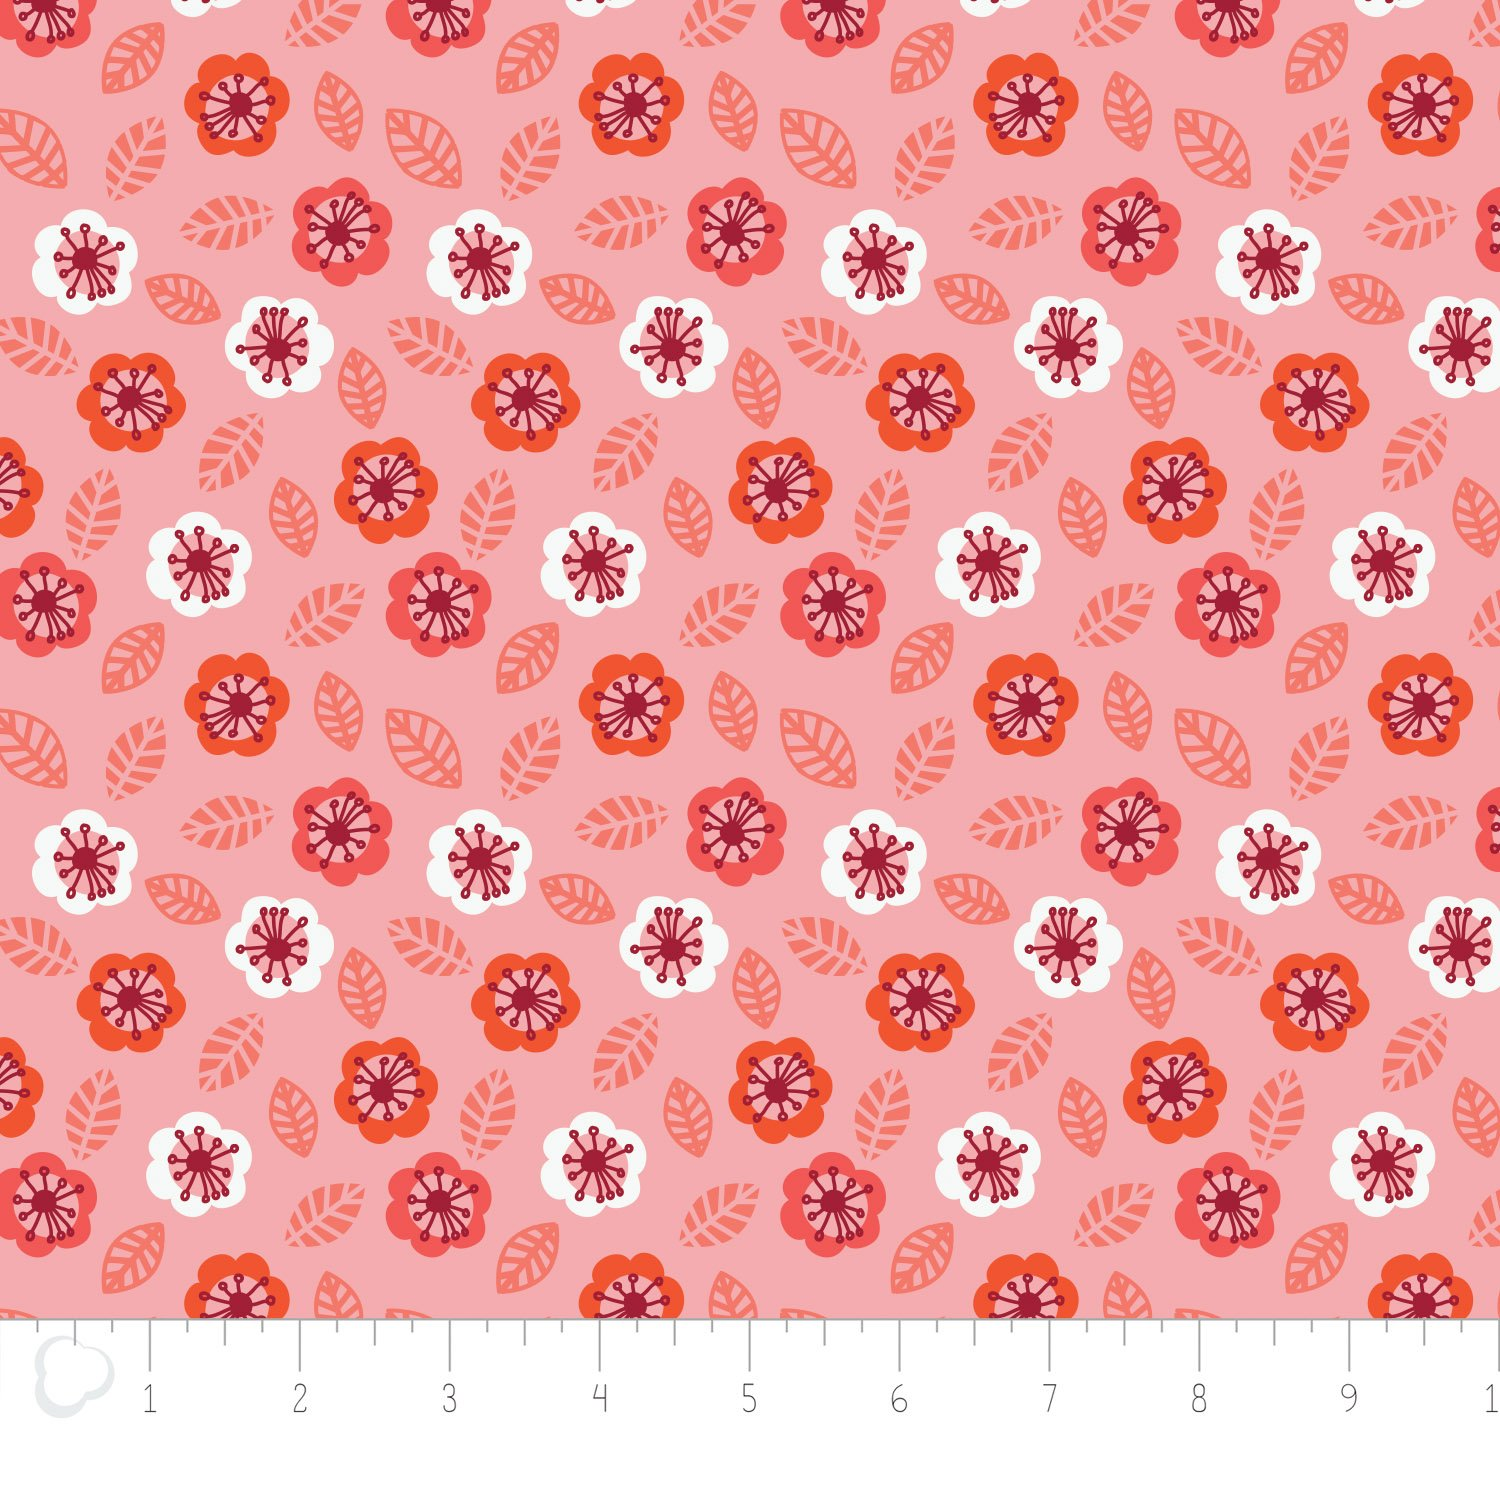 Camelot Fabrics-Jungly by Andrea Turk-Floral in Pink